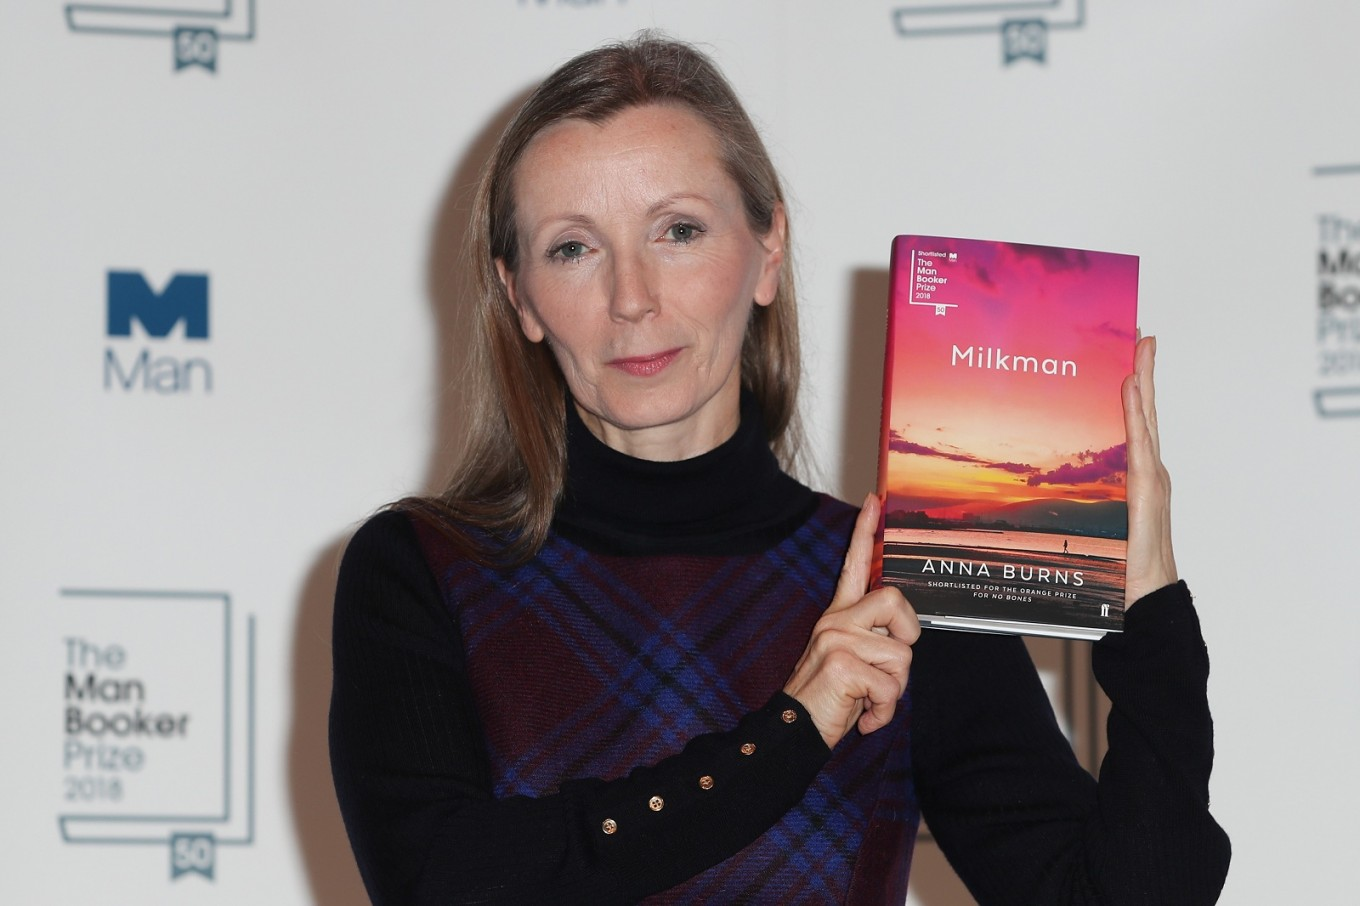 Novel set in Northern Ireland conflict wins Booker Prize